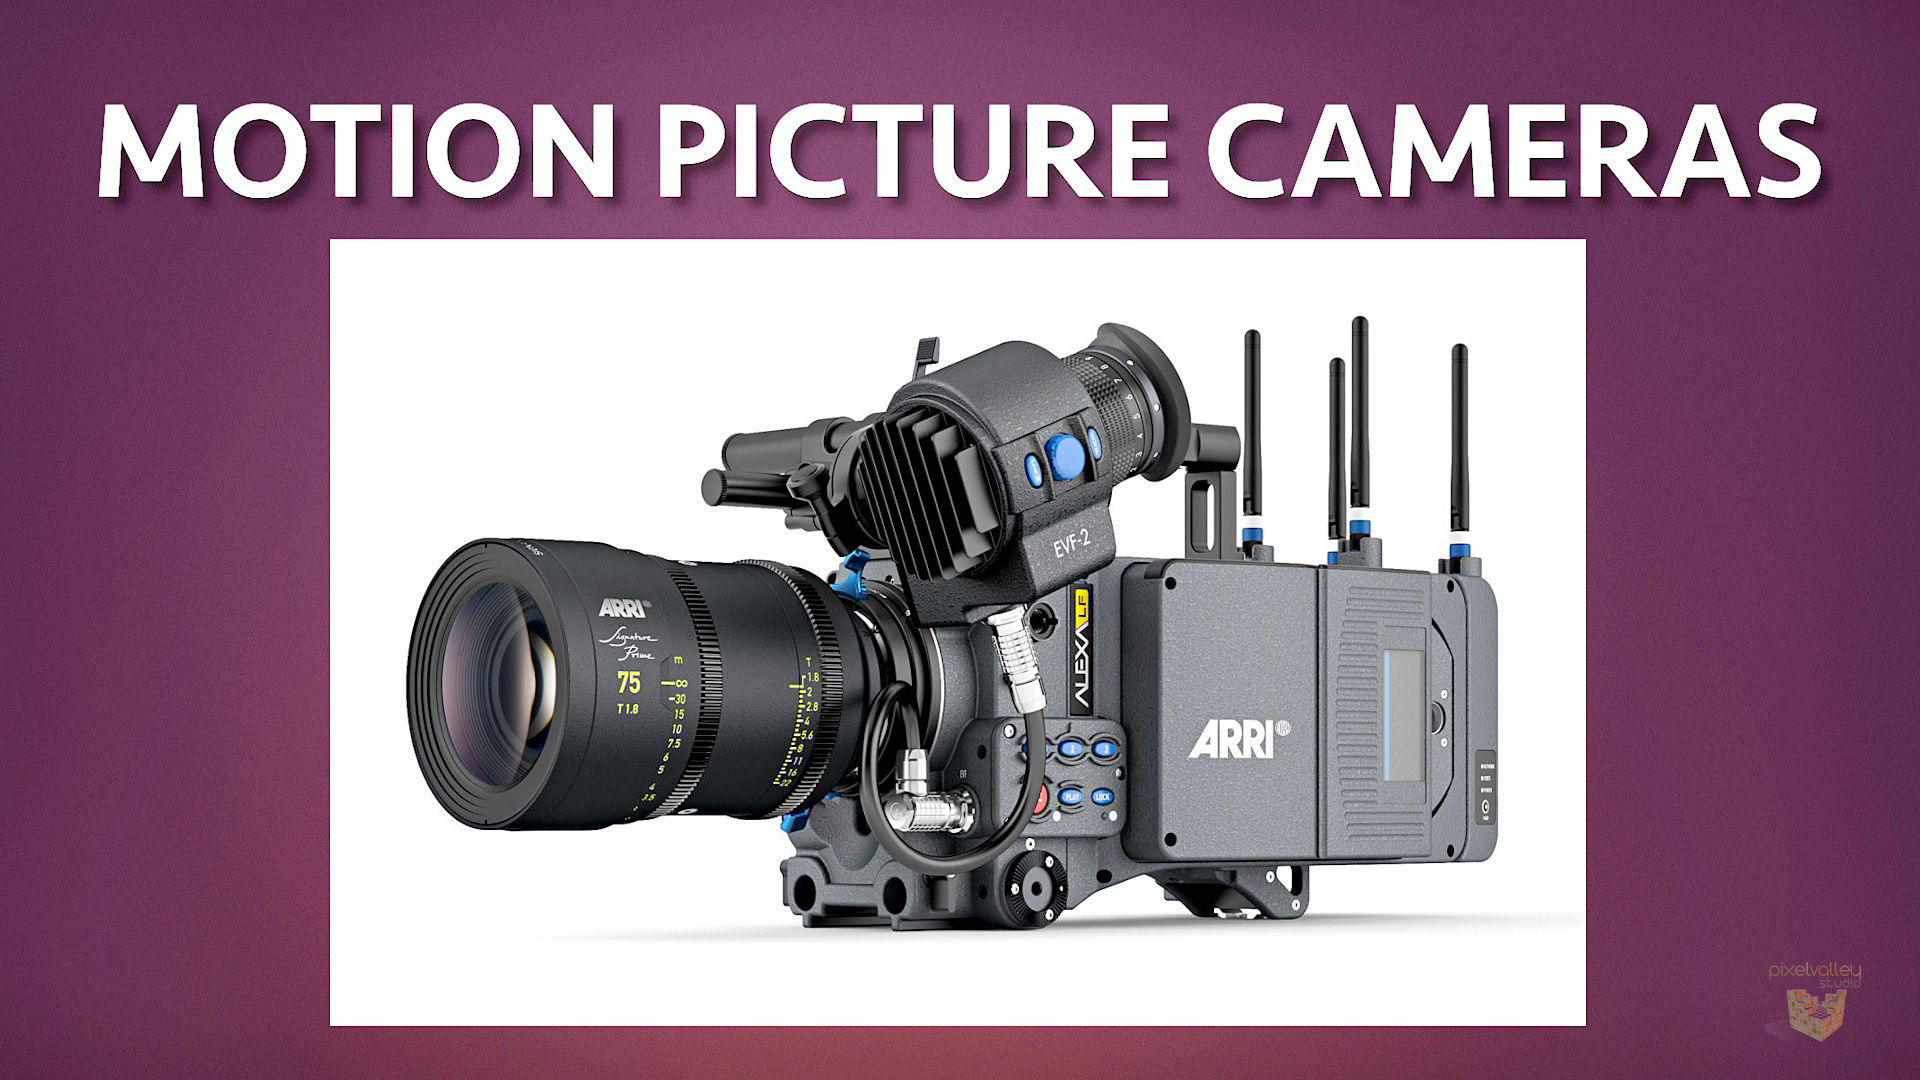 Motion Picture Cameras.jpg